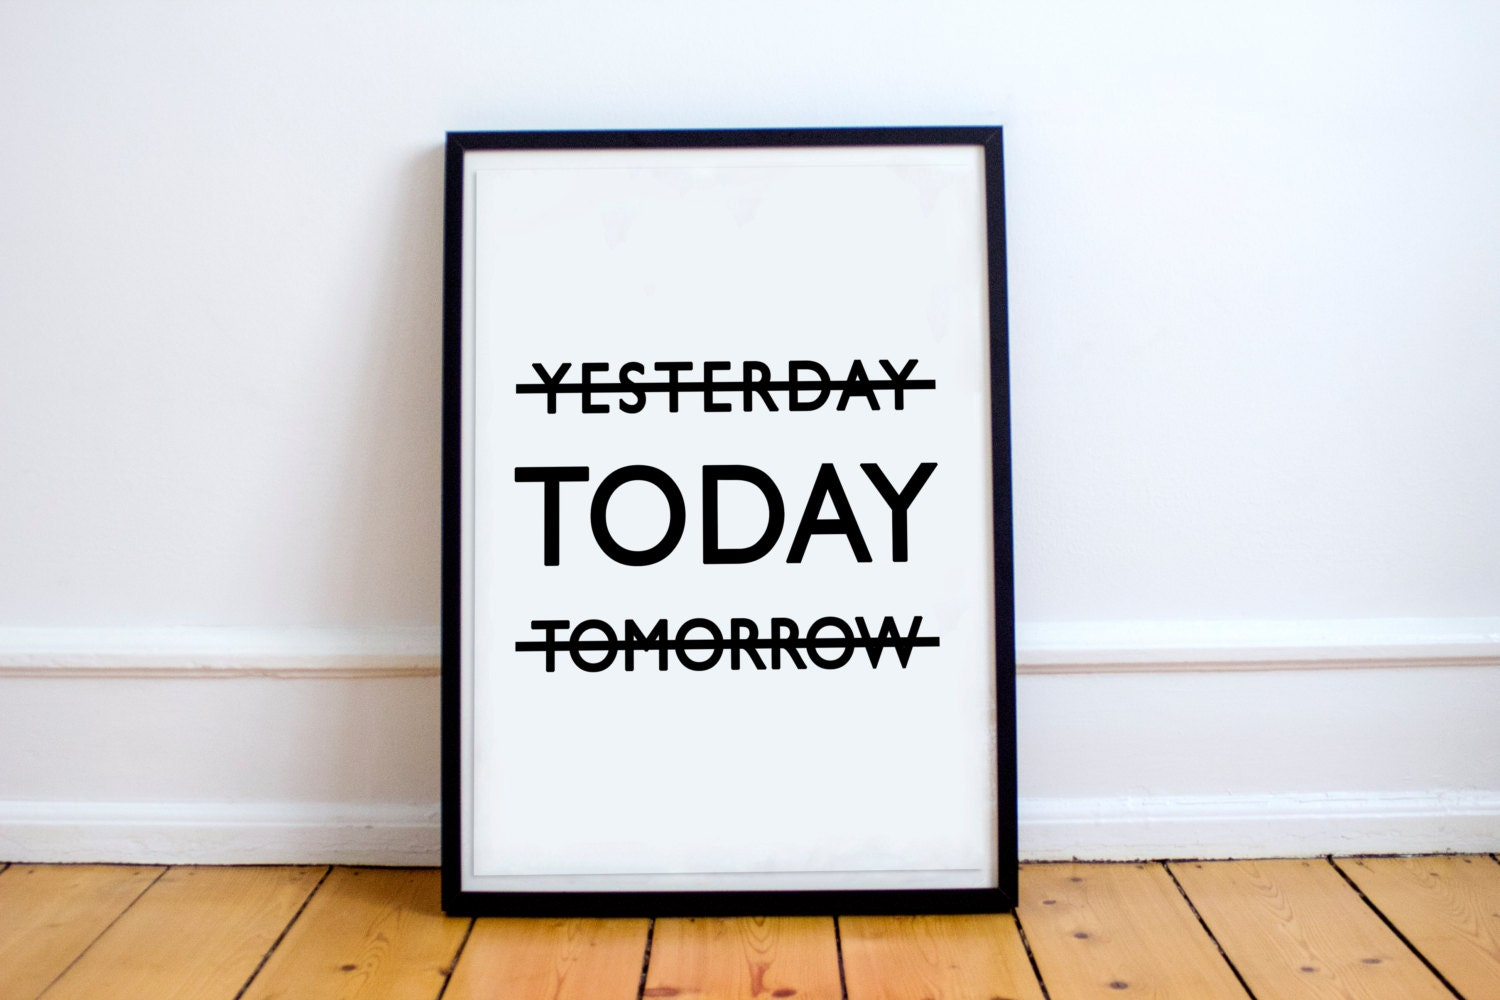 Yesterday today tomorrow print home decor wall art for Tomorrow s home